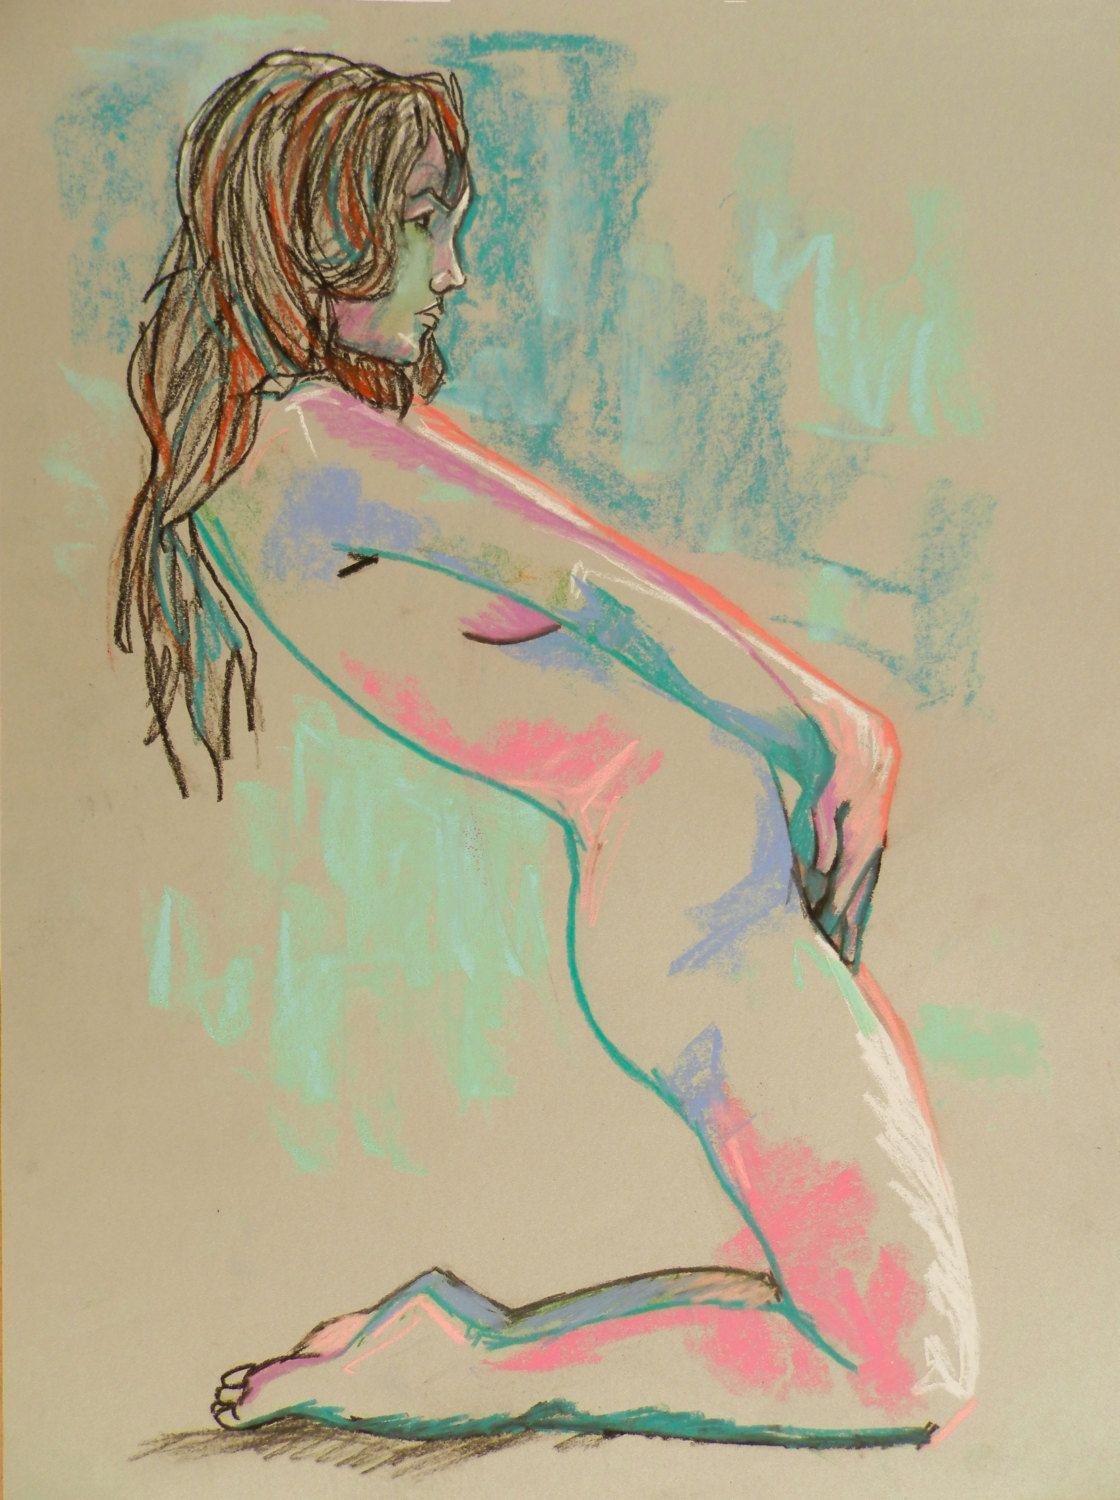 Female Nude Art Figure Study by Andrew Orton